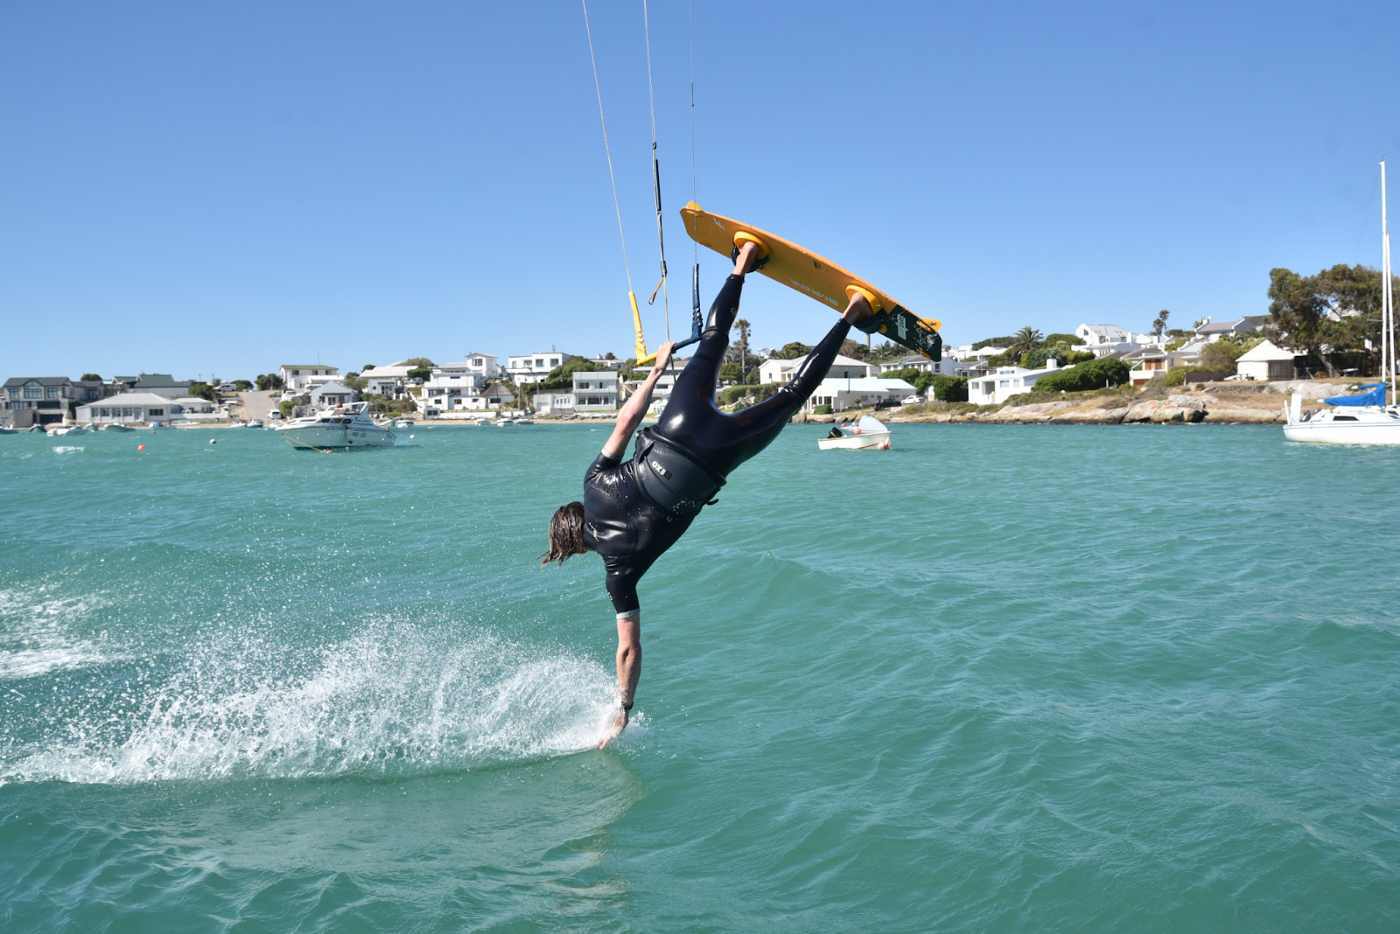 Matt Maxwell performing tricks with his kiteboard in the sea